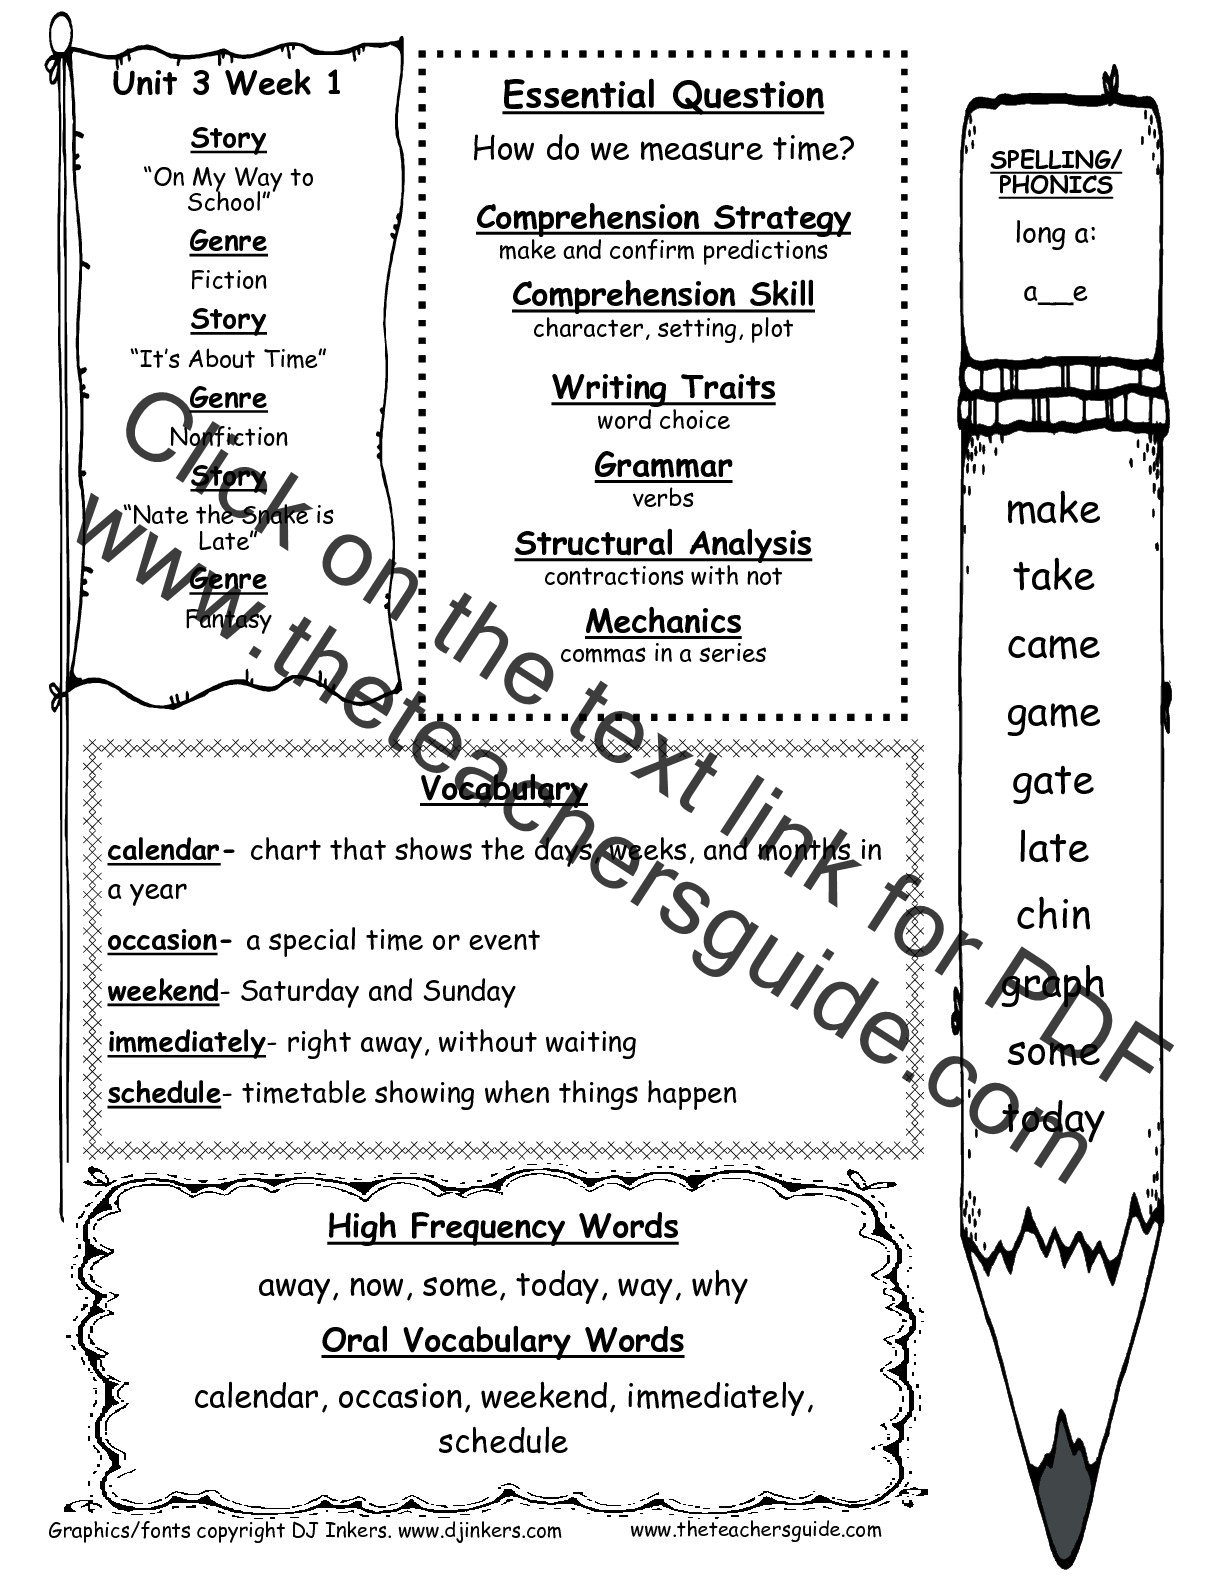 Daily Activities Worksheet 1st Grade